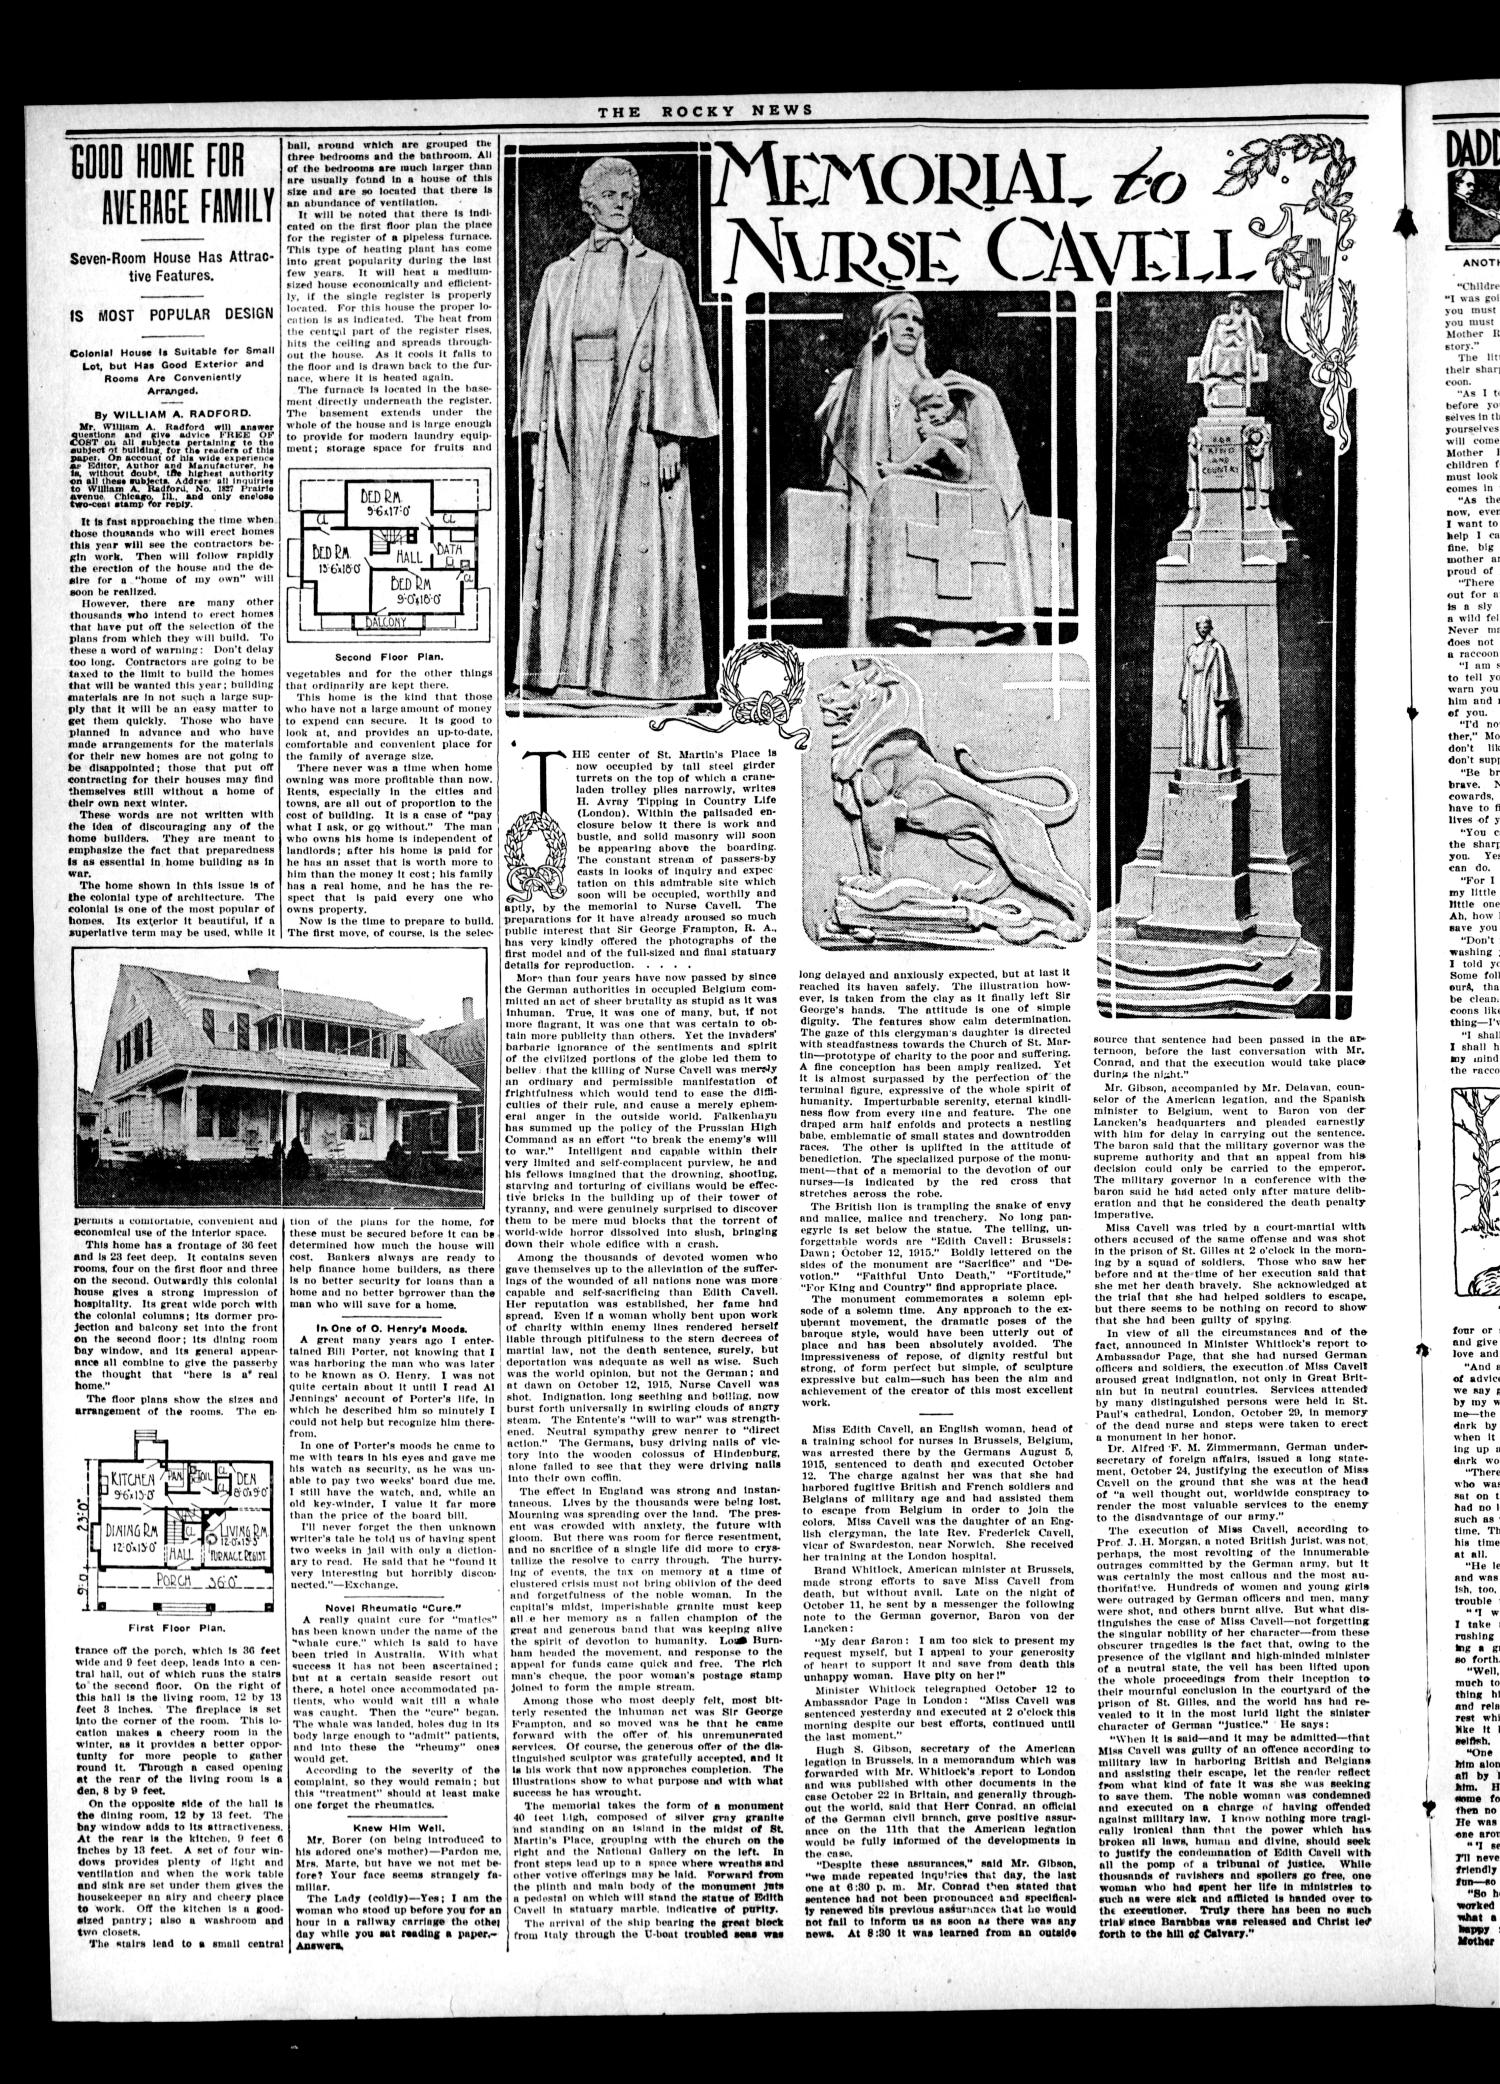 The Rocky News (Rocky, Okla.), Vol. 1, No. 35, Ed. 1 Friday, March 12, 1920                                                                                                      [Sequence #]: 2 of 4